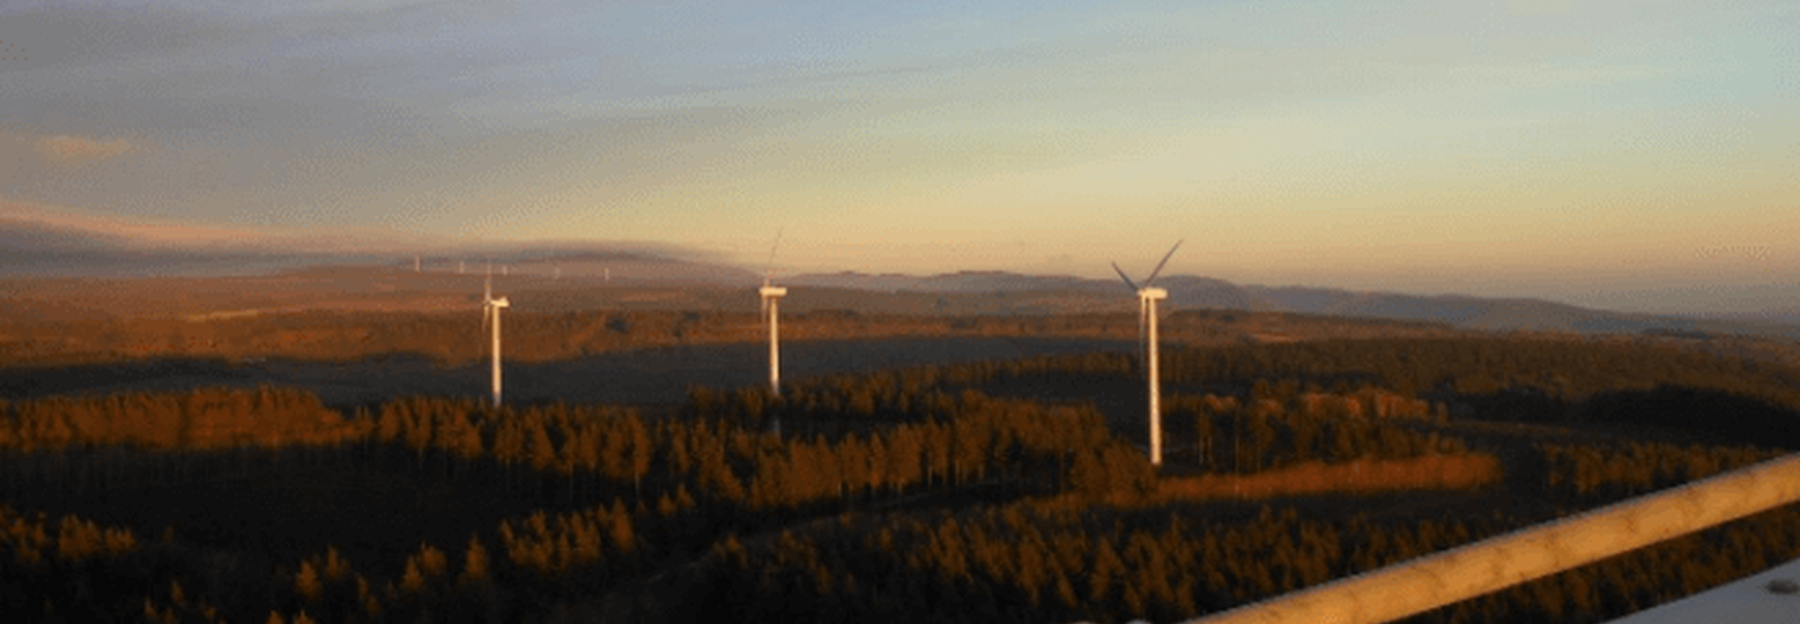 Windfit® has been installed on RES new operating windfarm in France